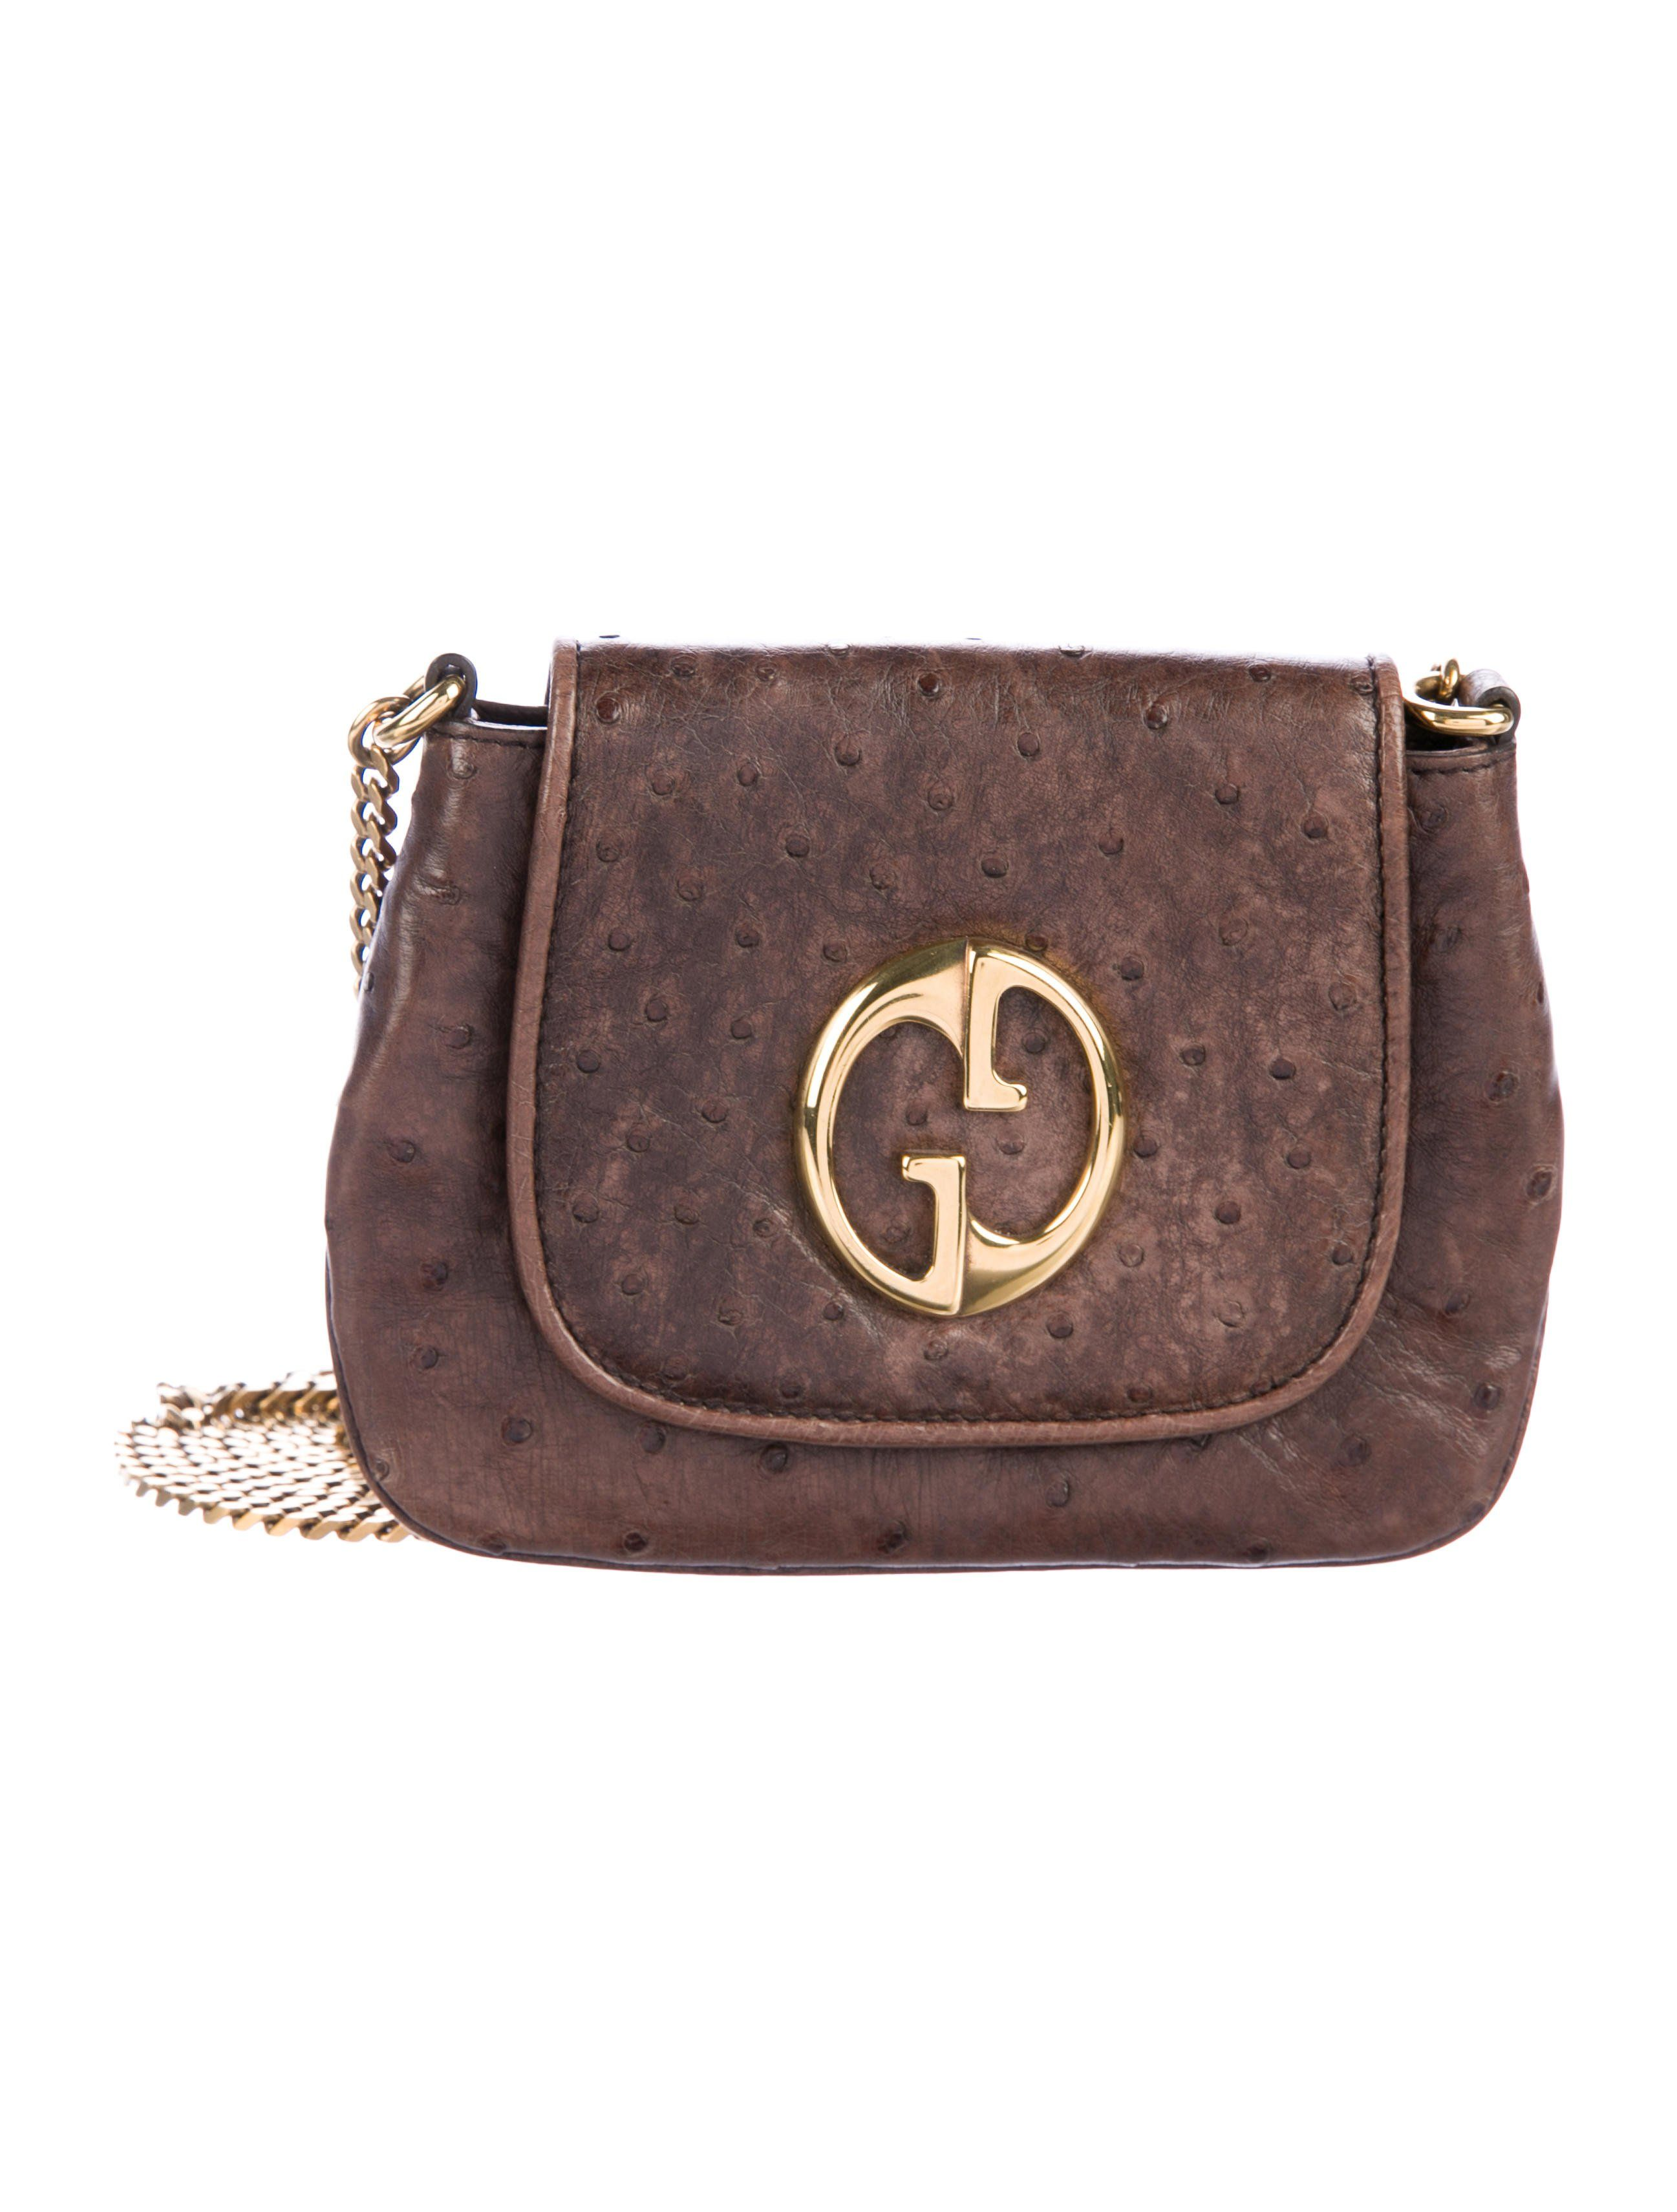 56b1a7585bb Brown ostrich Gucci Small 1973 Crossbody Bag with gold-tone hardware